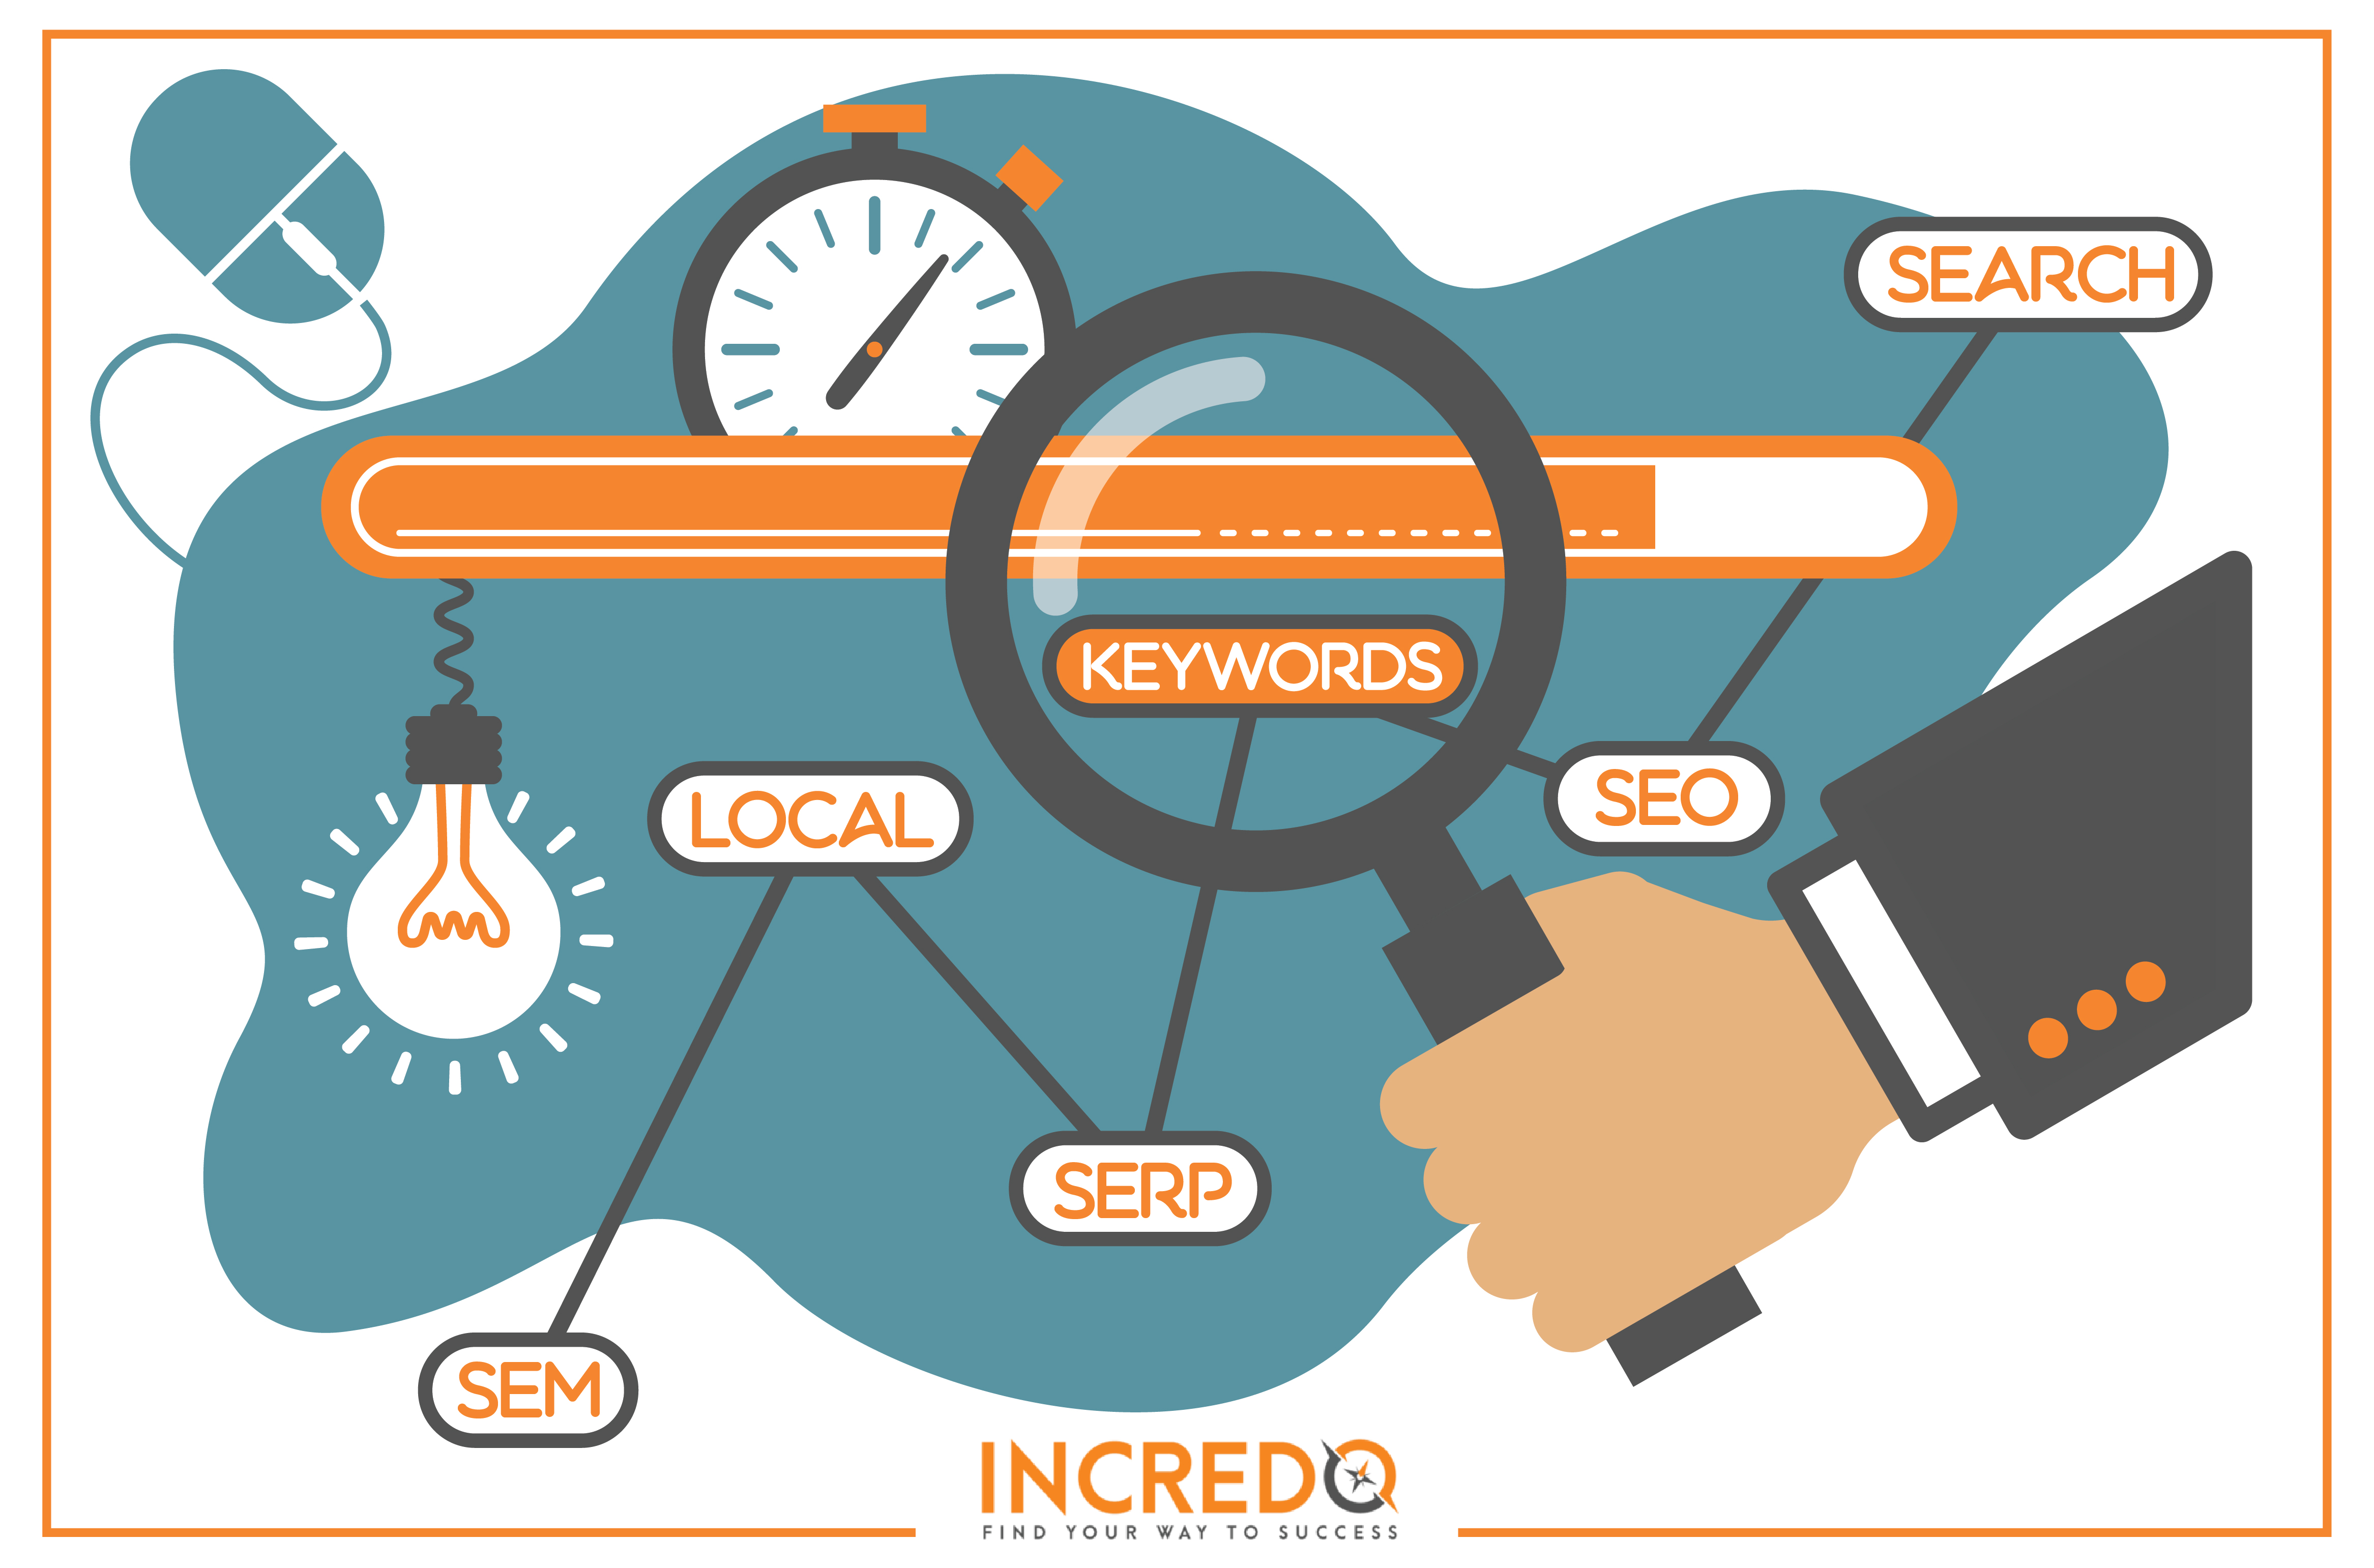 steps to apply keyword research